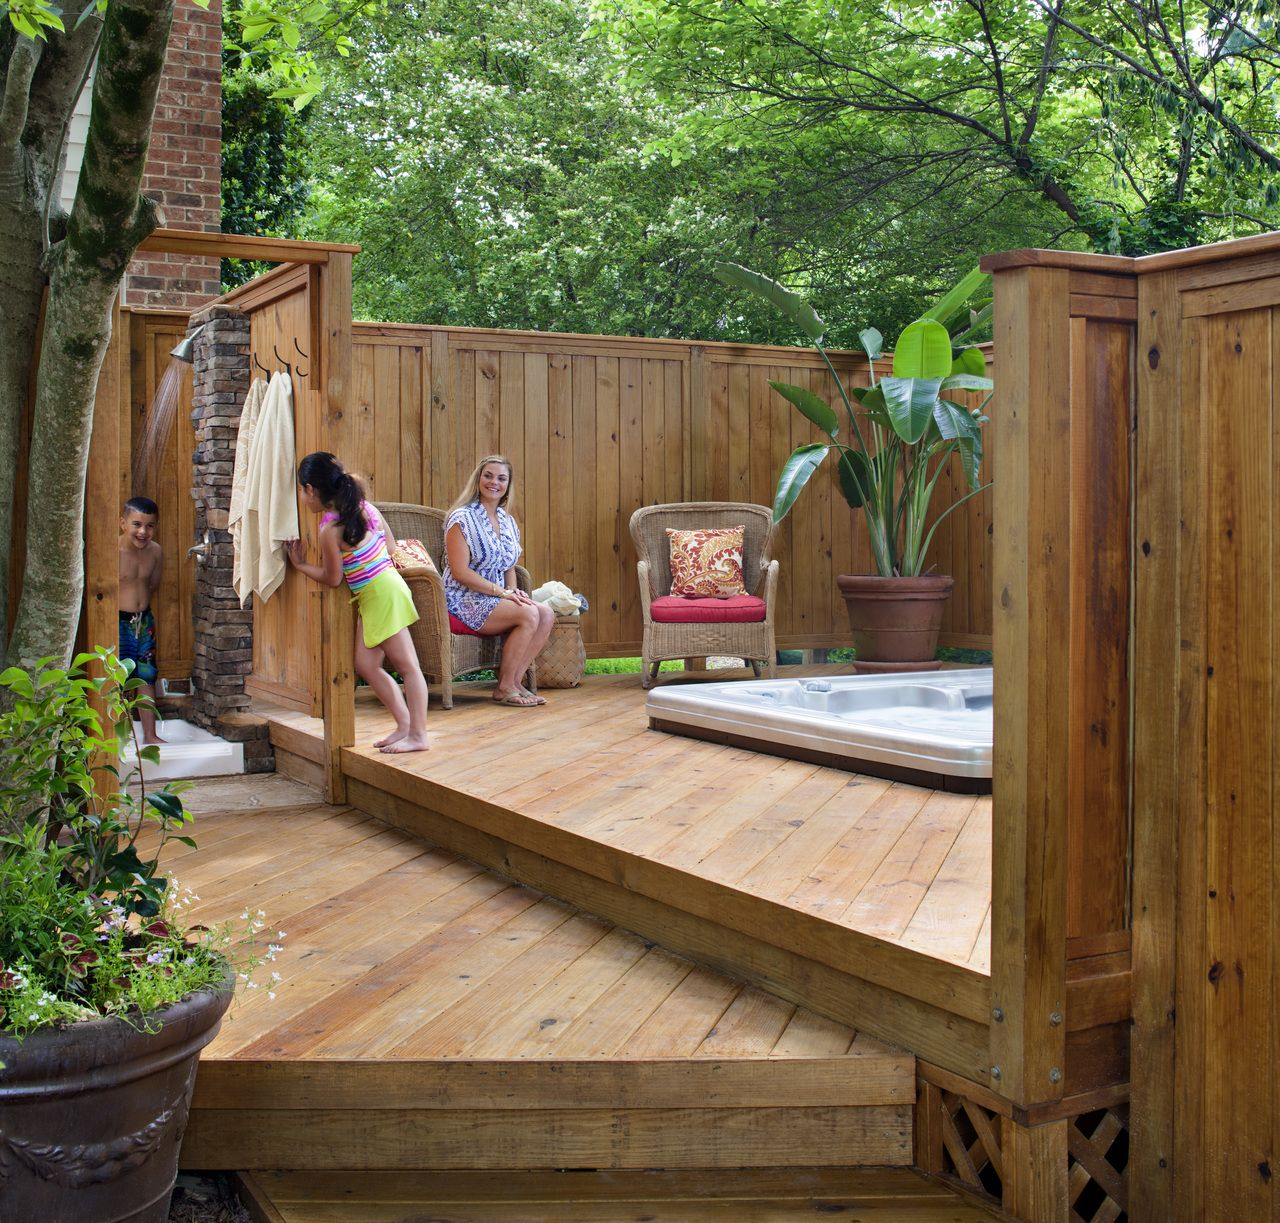 Living Privacy Fence Wood Deck Around Hot Tub With Privacy Fence Archadeck Outdoor